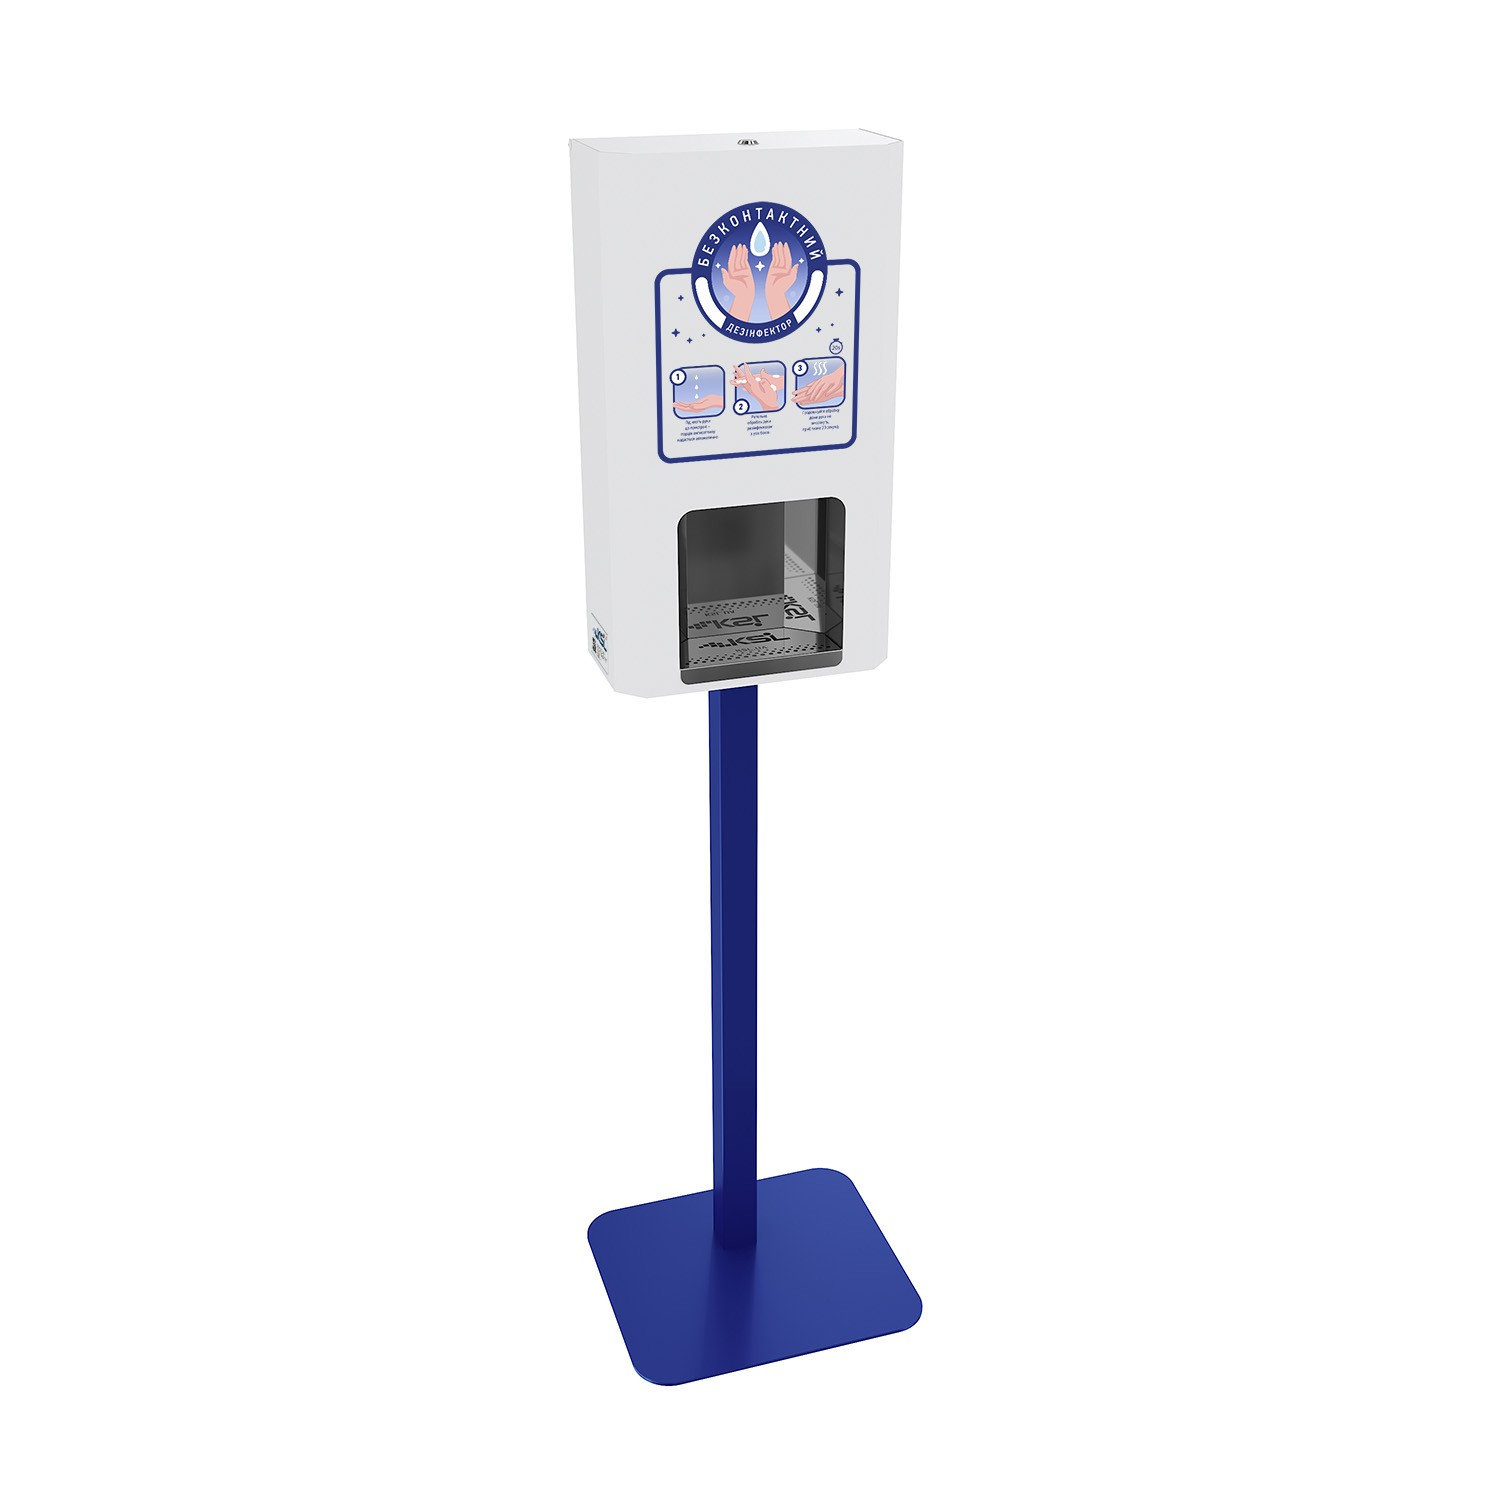 Hand hygiene station with touch-free automatic sanitizer dispenser